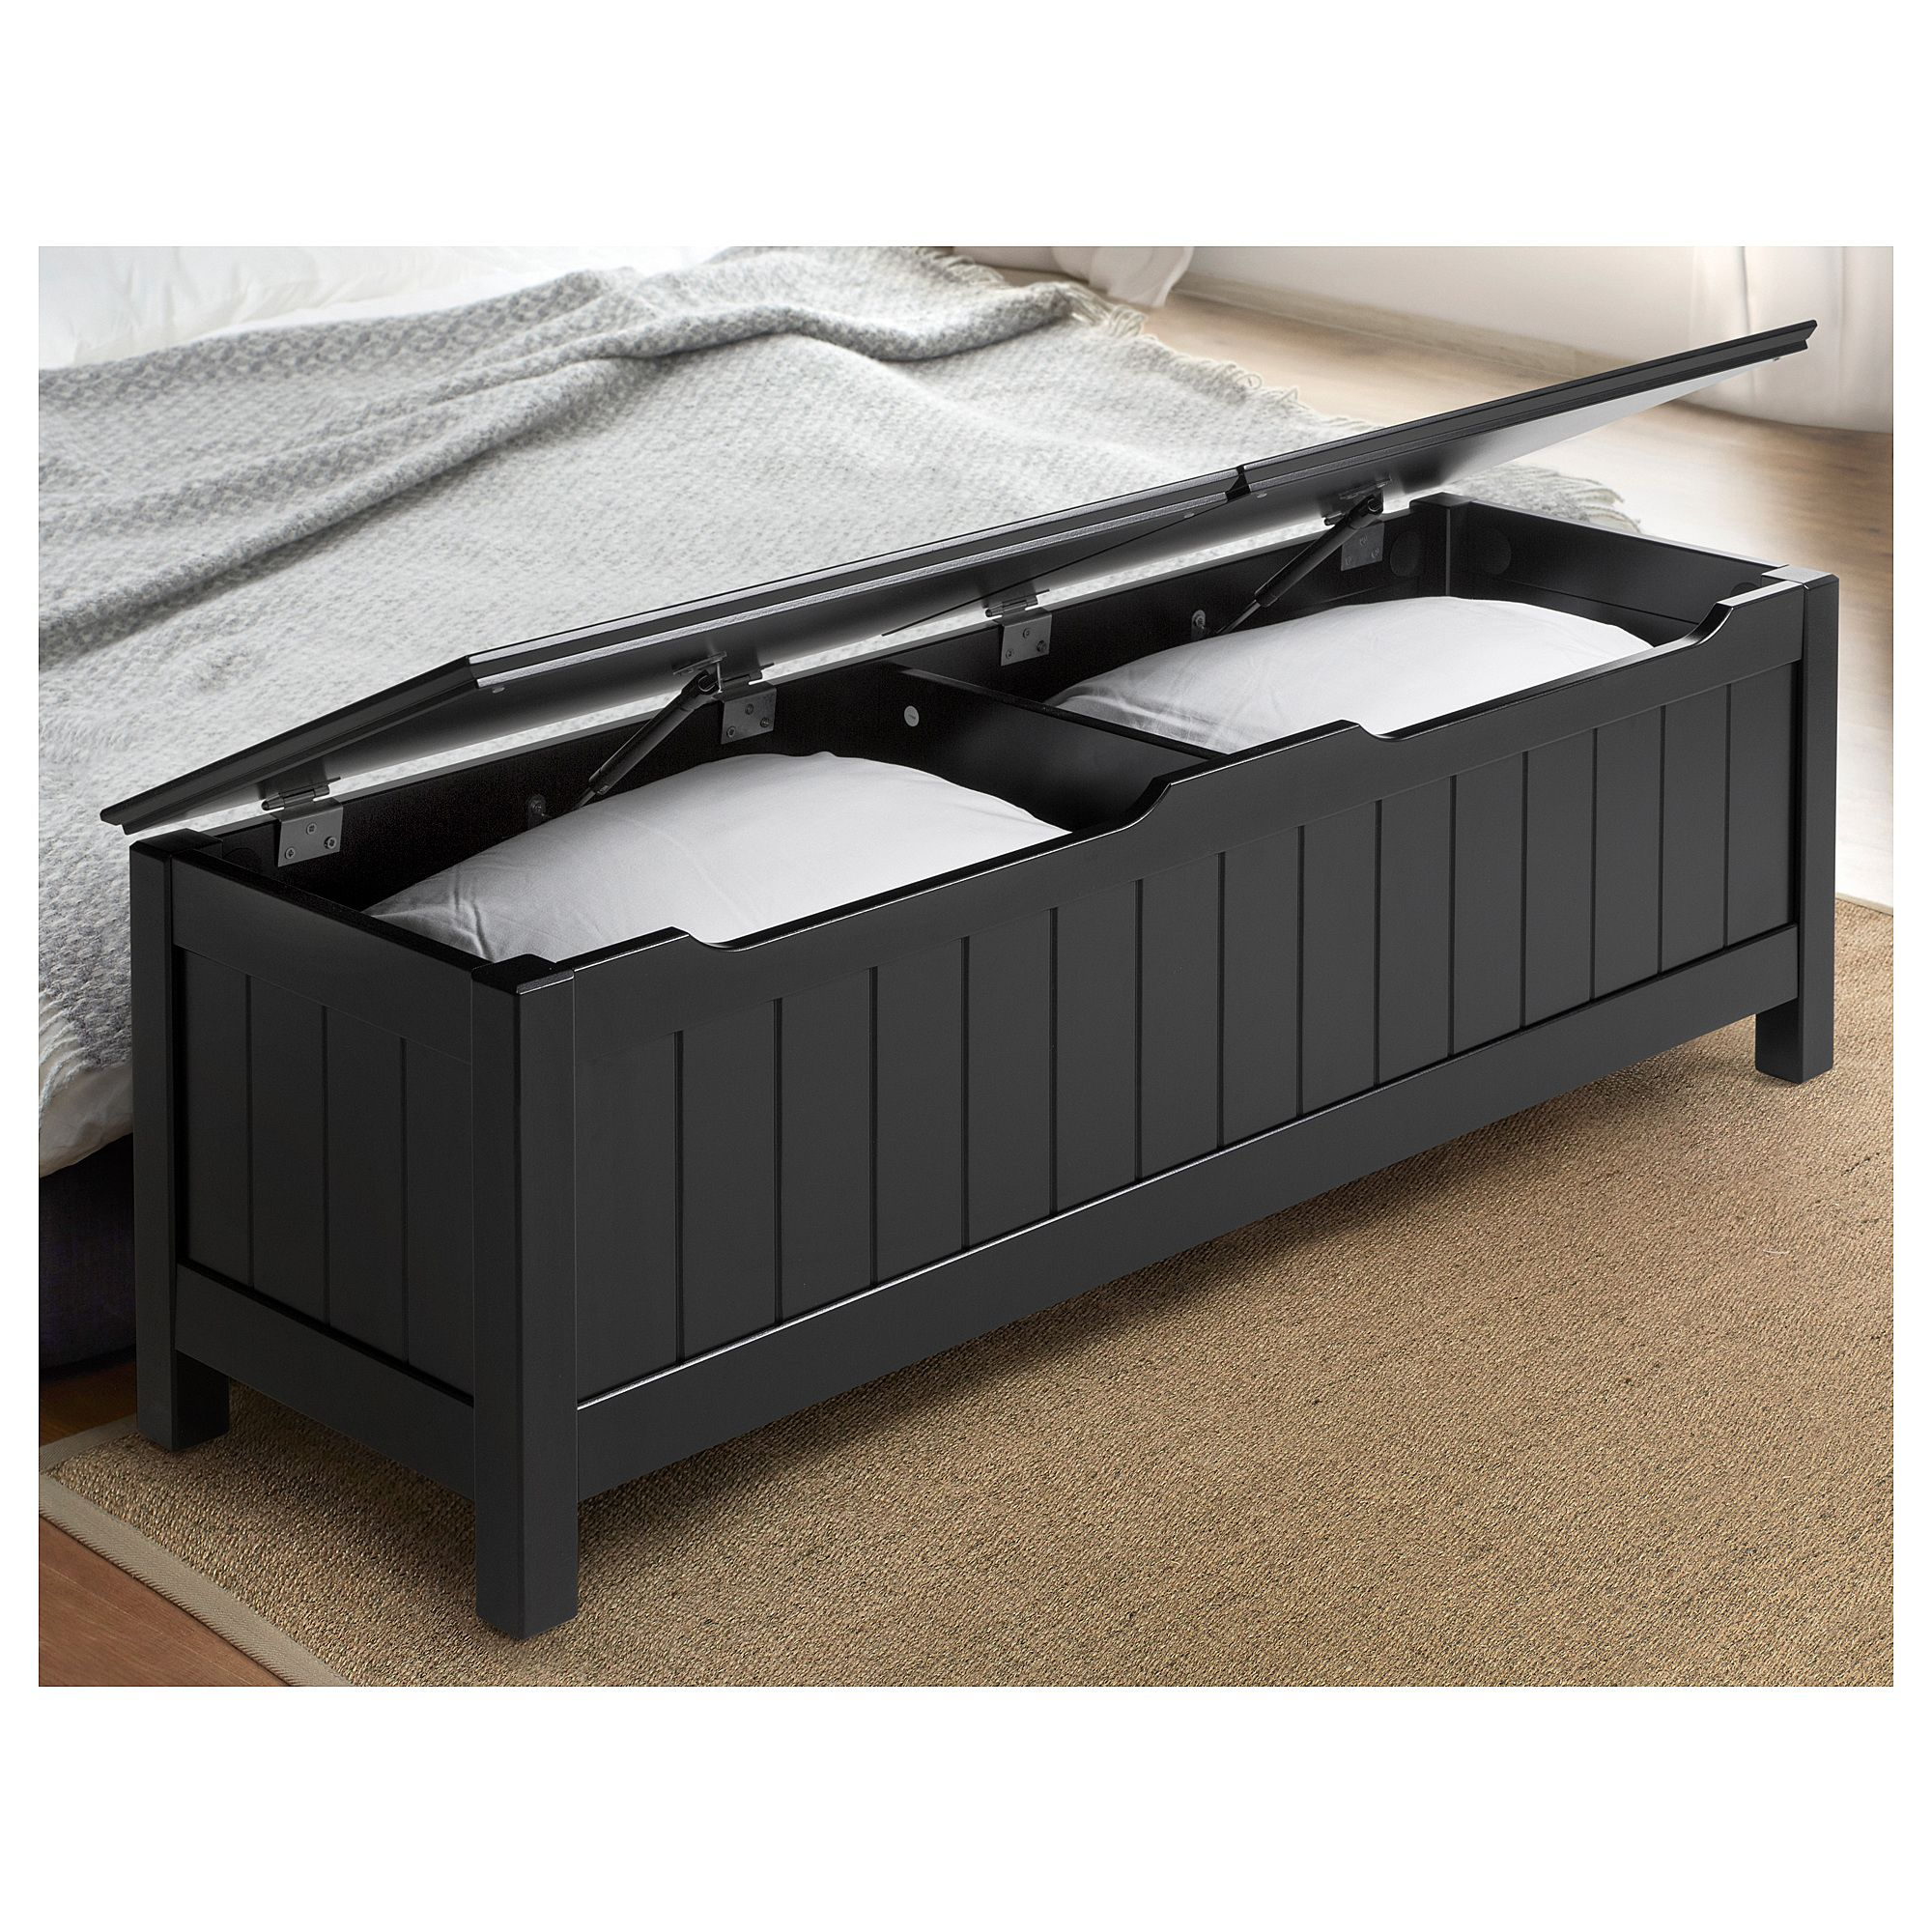 Furniture Home Furnishings Find Your Inspiration Storage Bench Bedroom Storage Bench Bench With Storage